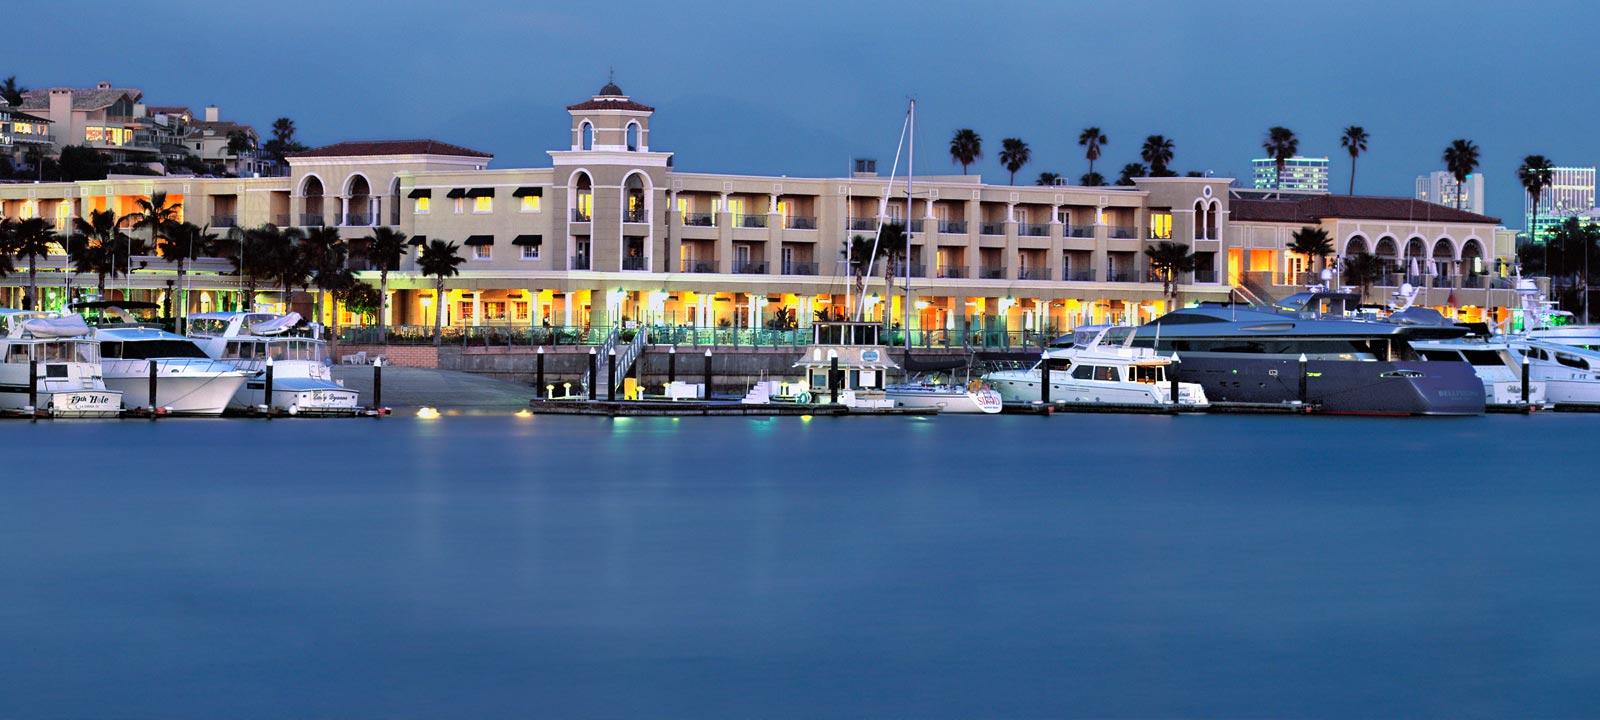 Balboa Bay Resort, Newport Beach, CA